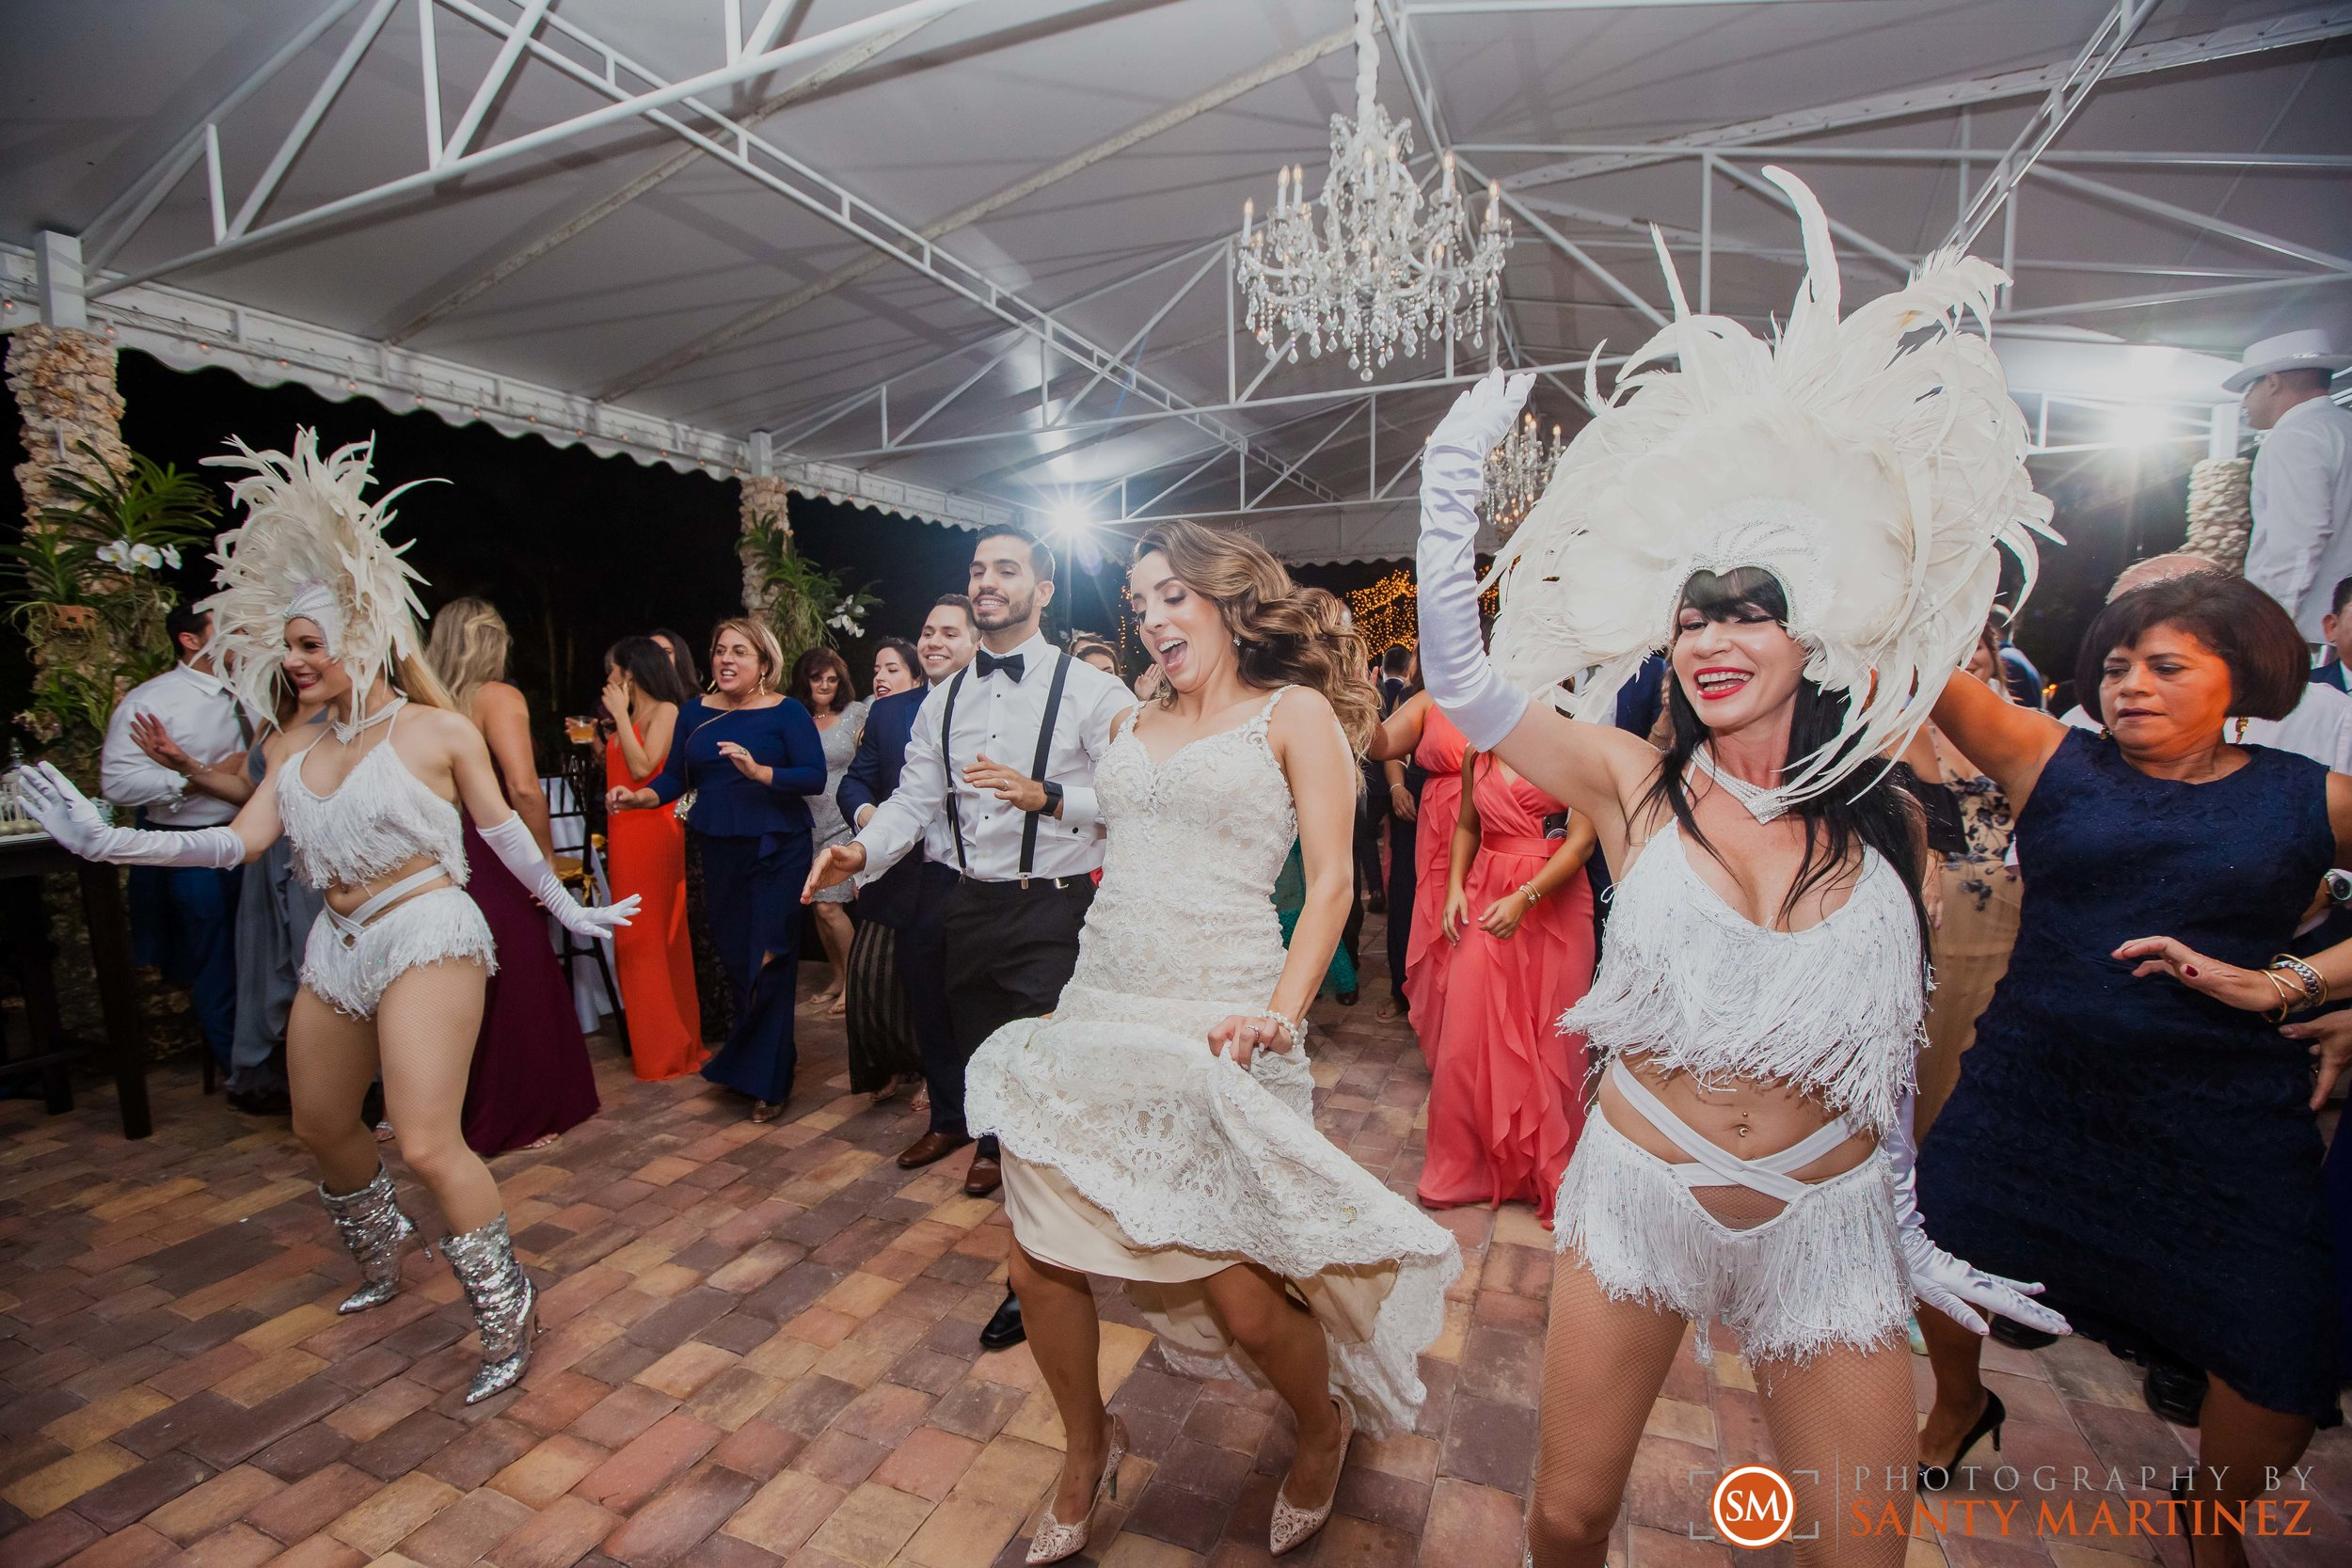 Wedding+at+the+The+Miller+Plantation+-+Santy+Martinez-49.jpg